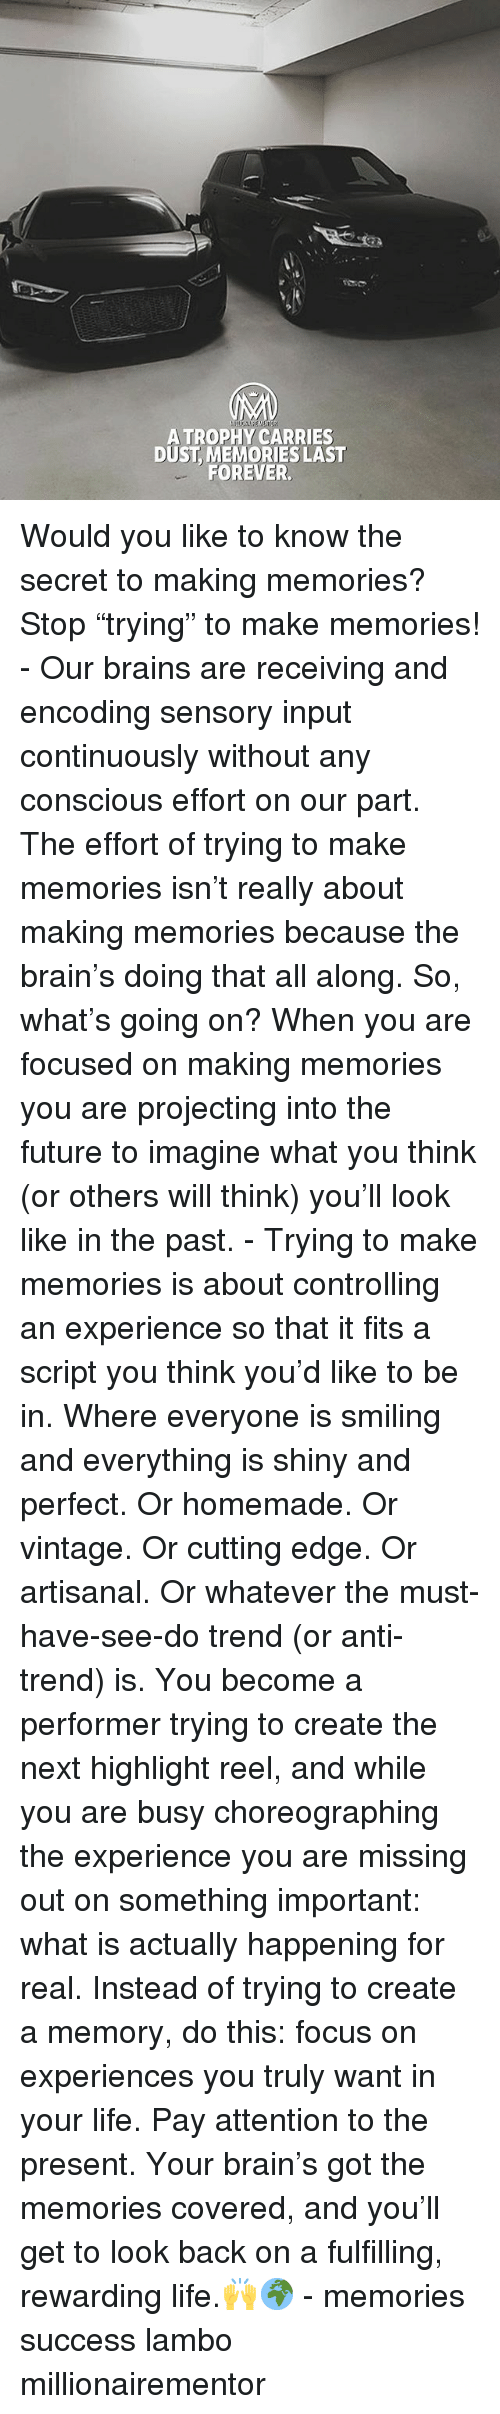 "Conscious Effort: ATROPHY CARRIES  DUST, MEMORIES LAST  FOREVER. Would you like to know the secret to making memories? Stop ""trying"" to make memories! - Our brains are receiving and encoding sensory input continuously without any conscious effort on our part. The effort of trying to make memories isn't really about making memories because the brain's doing that all along. So, what's going on? When you are focused on making memories you are projecting into the future to imagine what you think (or others will think) you'll look like in the past. - Trying to make memories is about controlling an experience so that it fits a script you think you'd like to be in. Where everyone is smiling and everything is shiny and perfect. Or homemade. Or vintage. Or cutting edge. Or artisanal. Or whatever the must-have-see-do trend (or anti-trend) is. You become a performer trying to create the next highlight reel, and while you are busy choreographing the experience you are missing out on something important: what is actually happening for real. Instead of trying to create a memory, do this: focus on experiences you truly want in your life. Pay attention to the present. Your brain's got the memories covered, and you'll get to look back on a fulfilling, rewarding life.🙌🌍 - memories success lambo millionairementor"